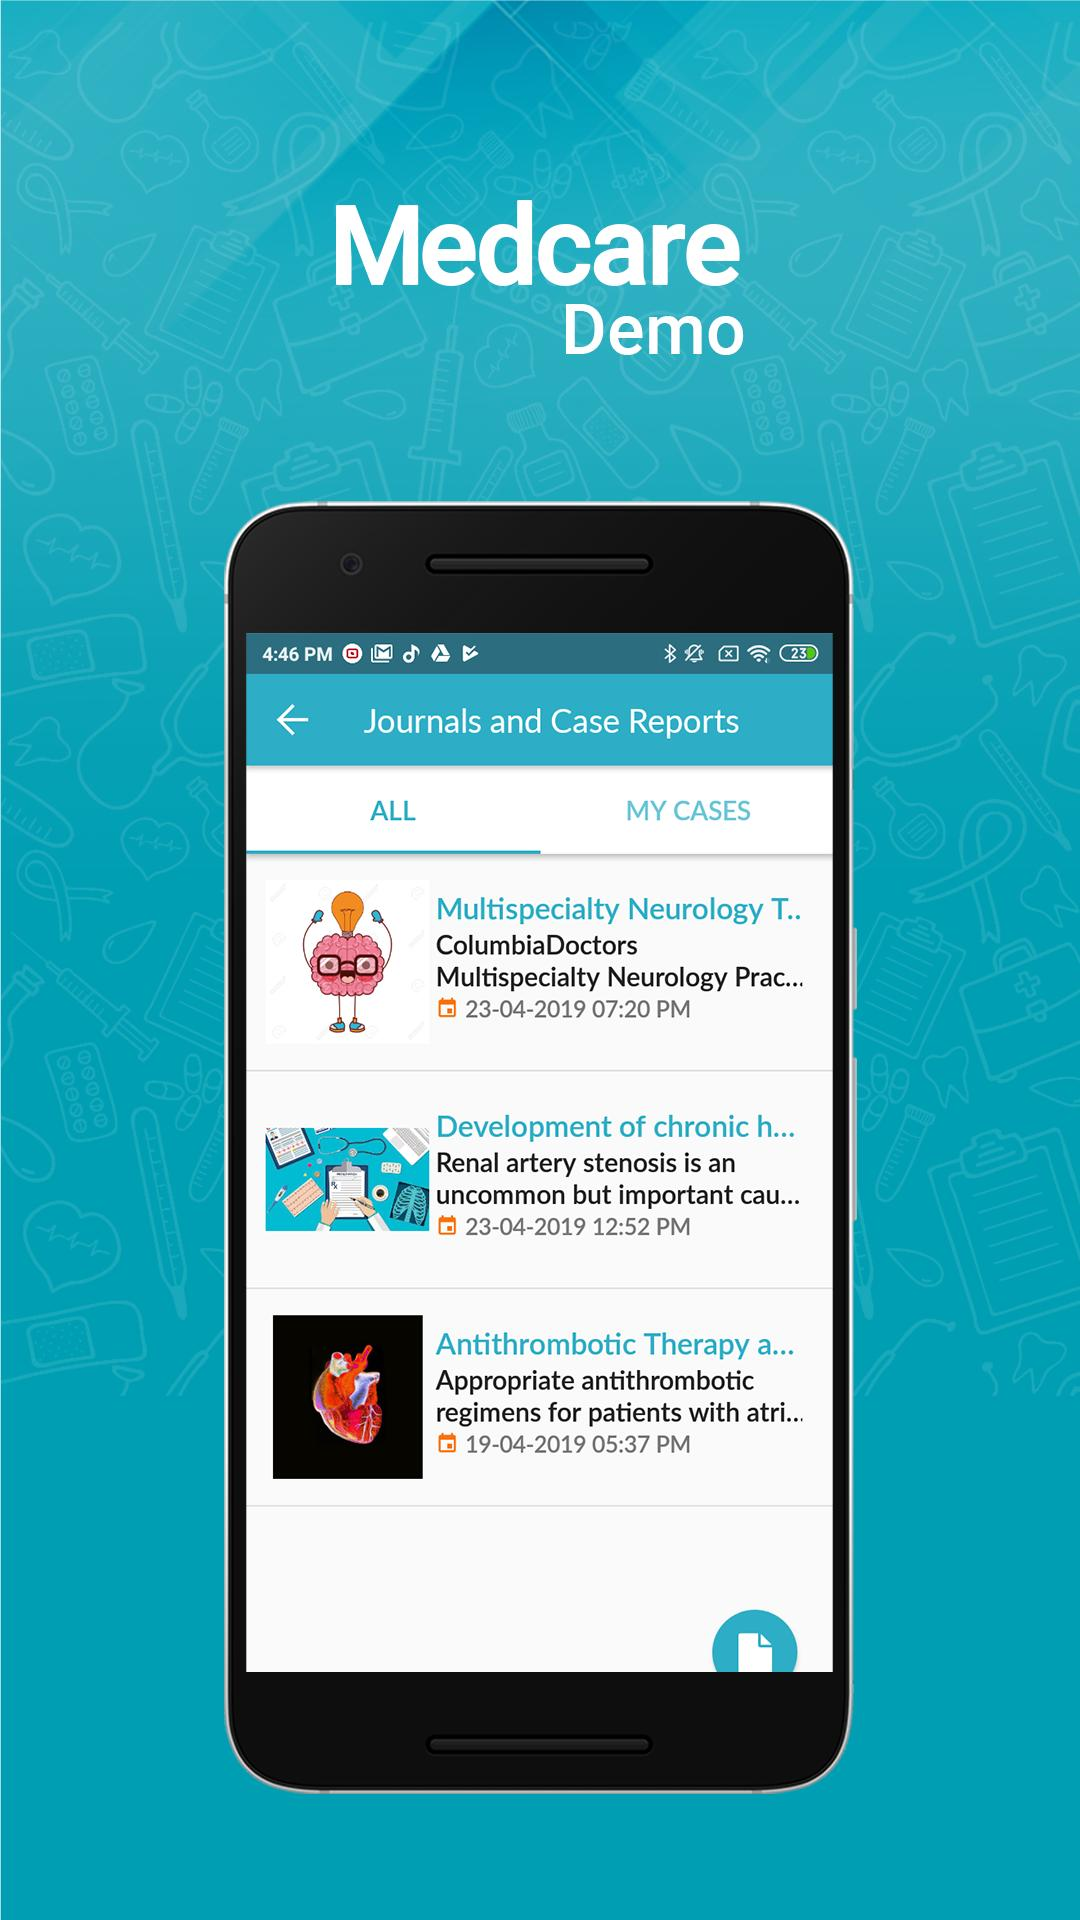 Medcare Demo Doctor for Android - APK Download